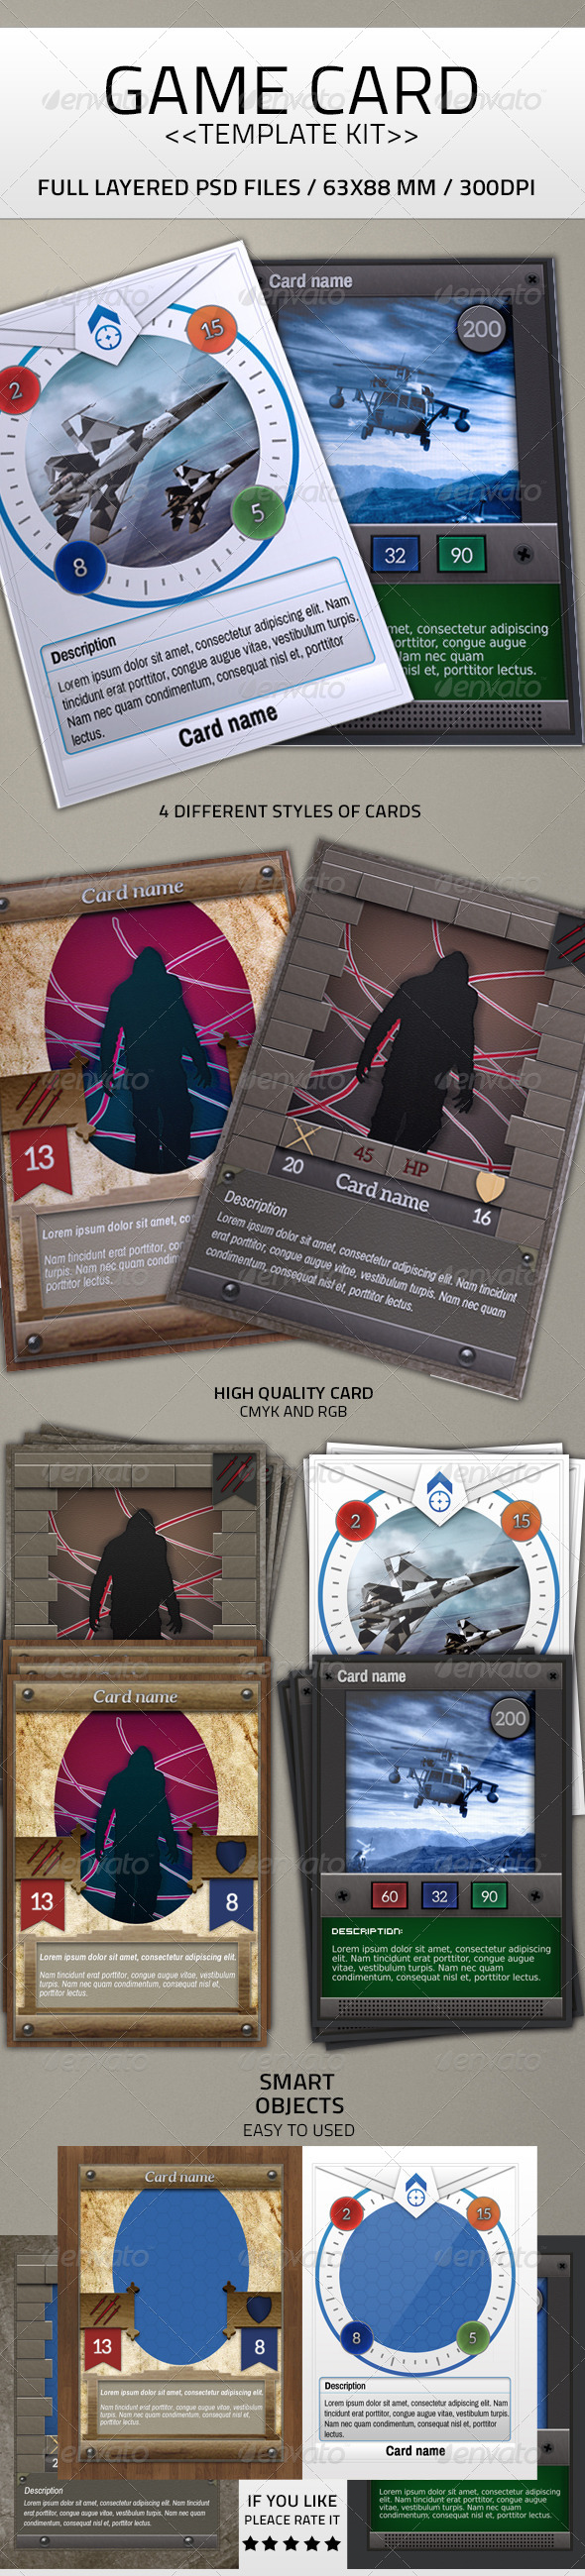 Card Game Kit Template - Miscellaneous Print Templates